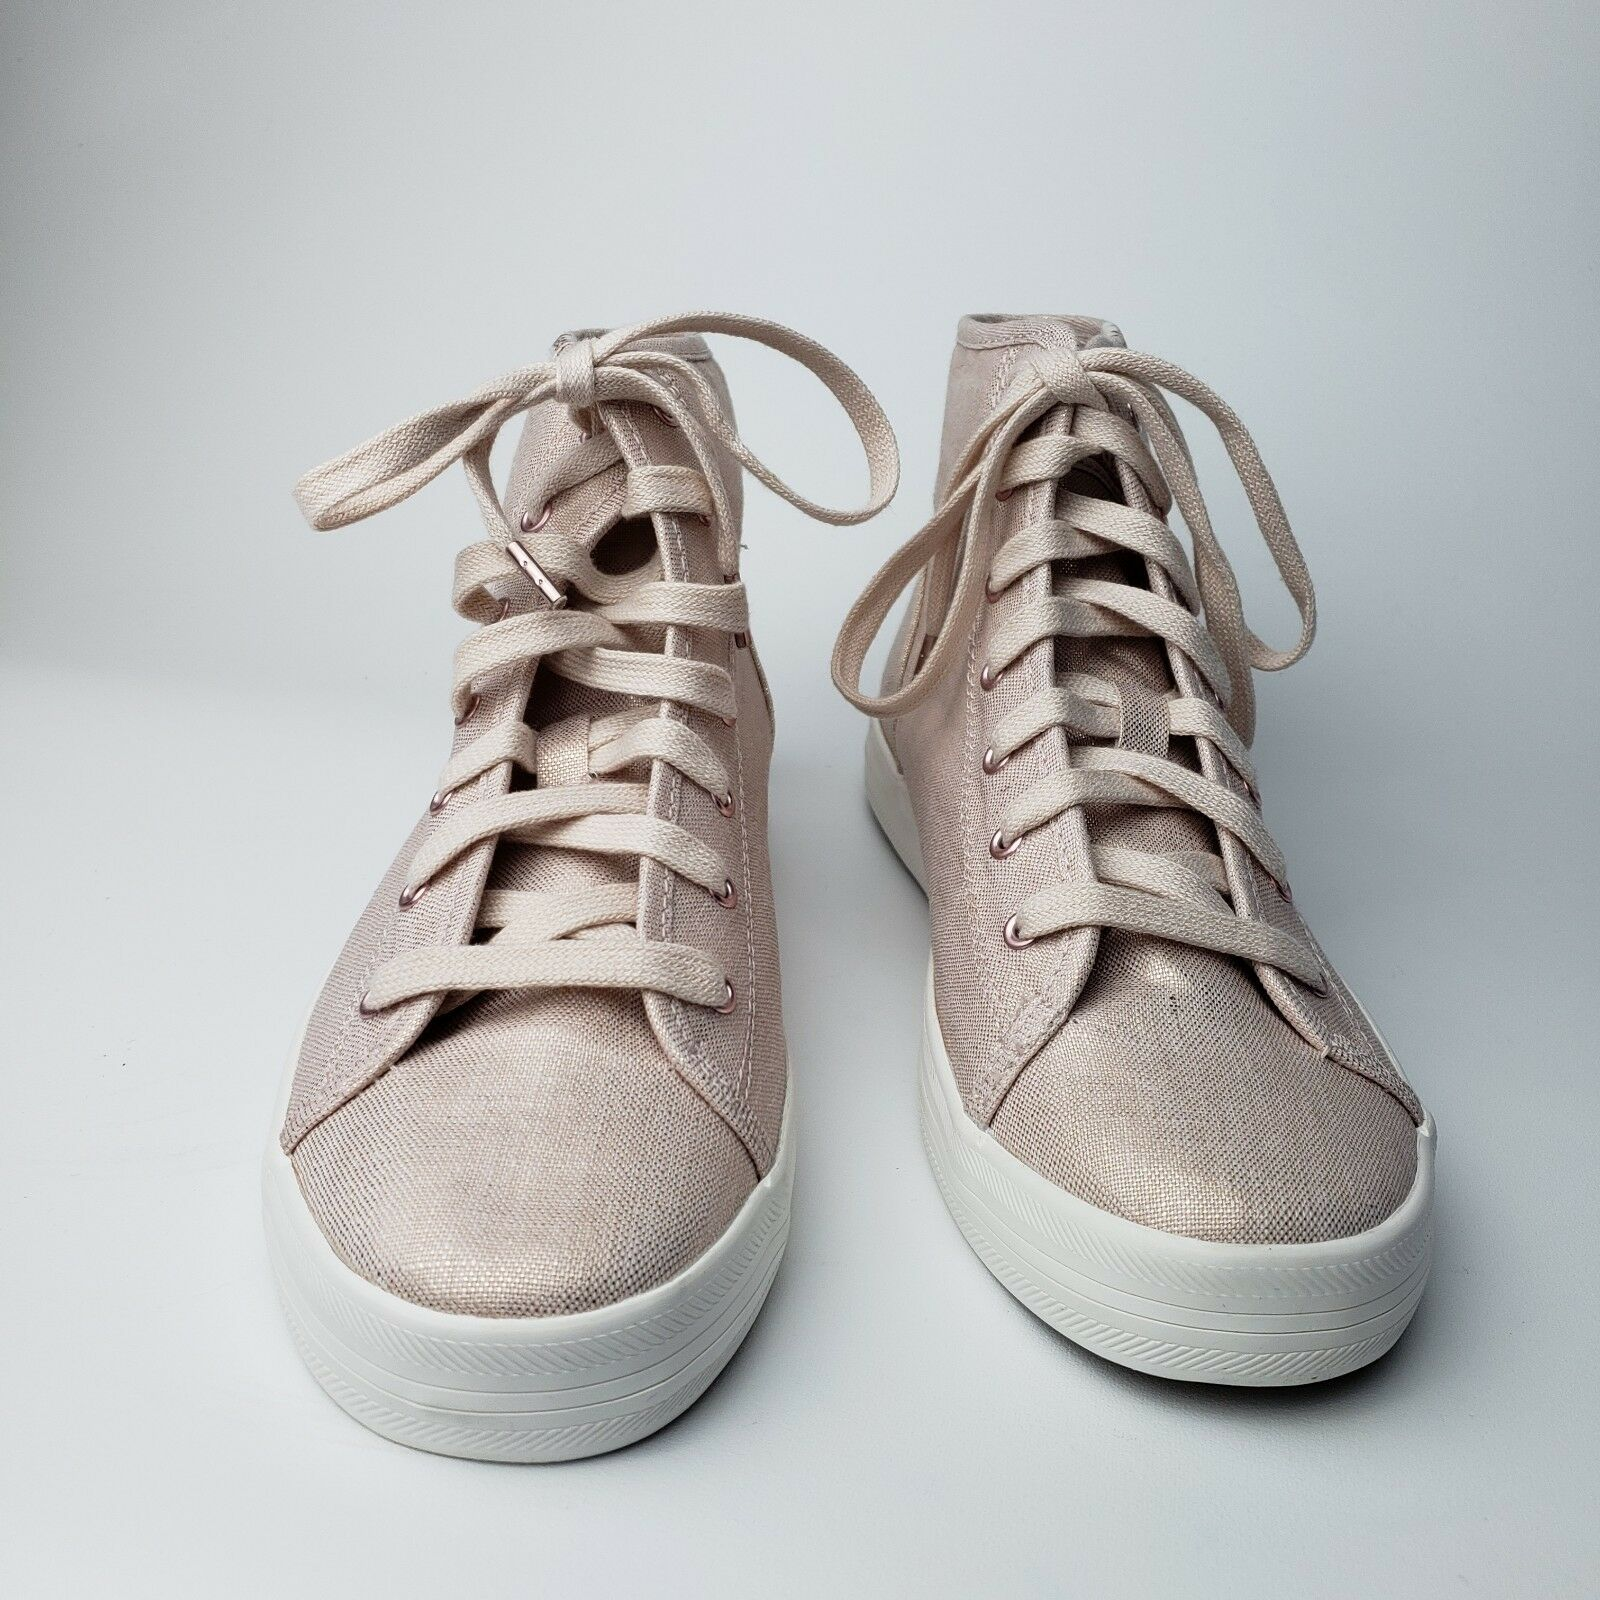 Keds Kickstart HI Met Rose or Taille 7 new in in in box c49702